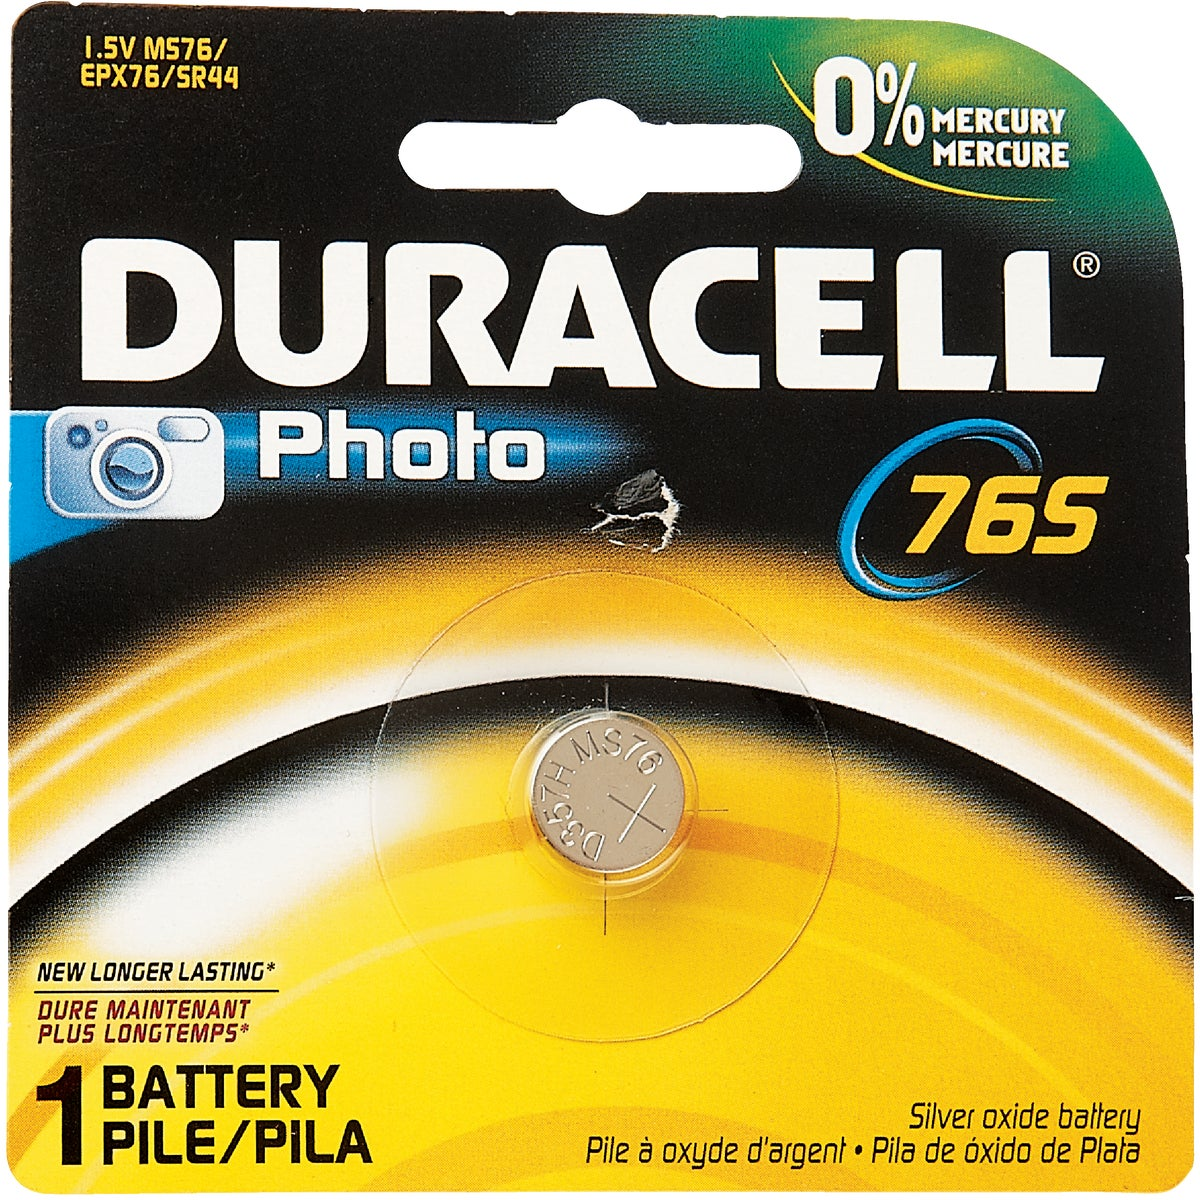 MS76 1.5V PHOTO BATTERY - 29387 by P & G  Duracell